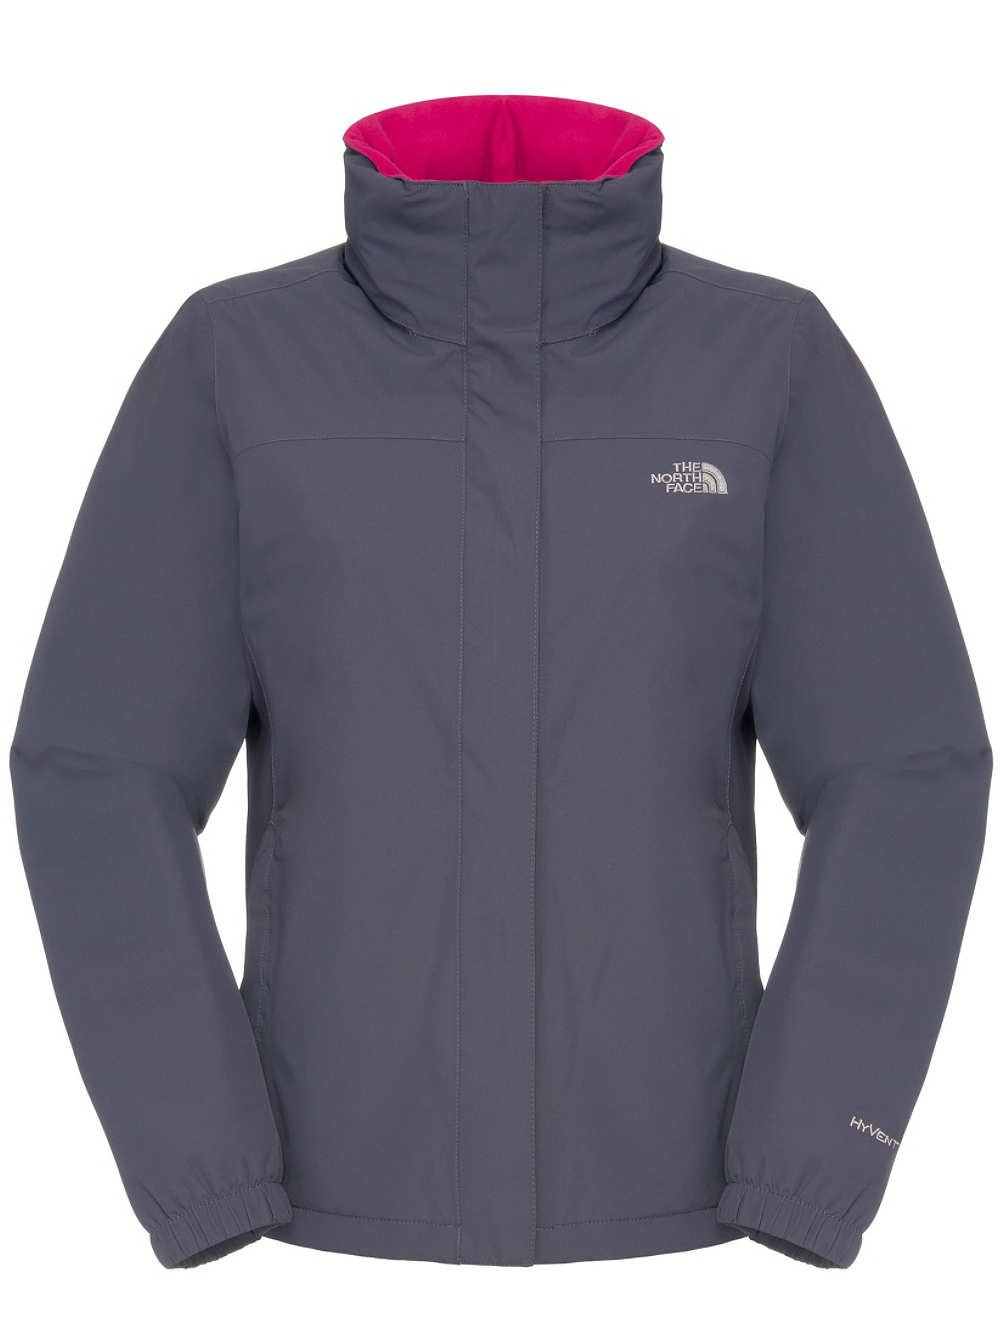 8f8ab9213 THE NORTH FACE Women's Resolve Insulated Jacket sky blue D3R Greystone Blue  Size:x-Large